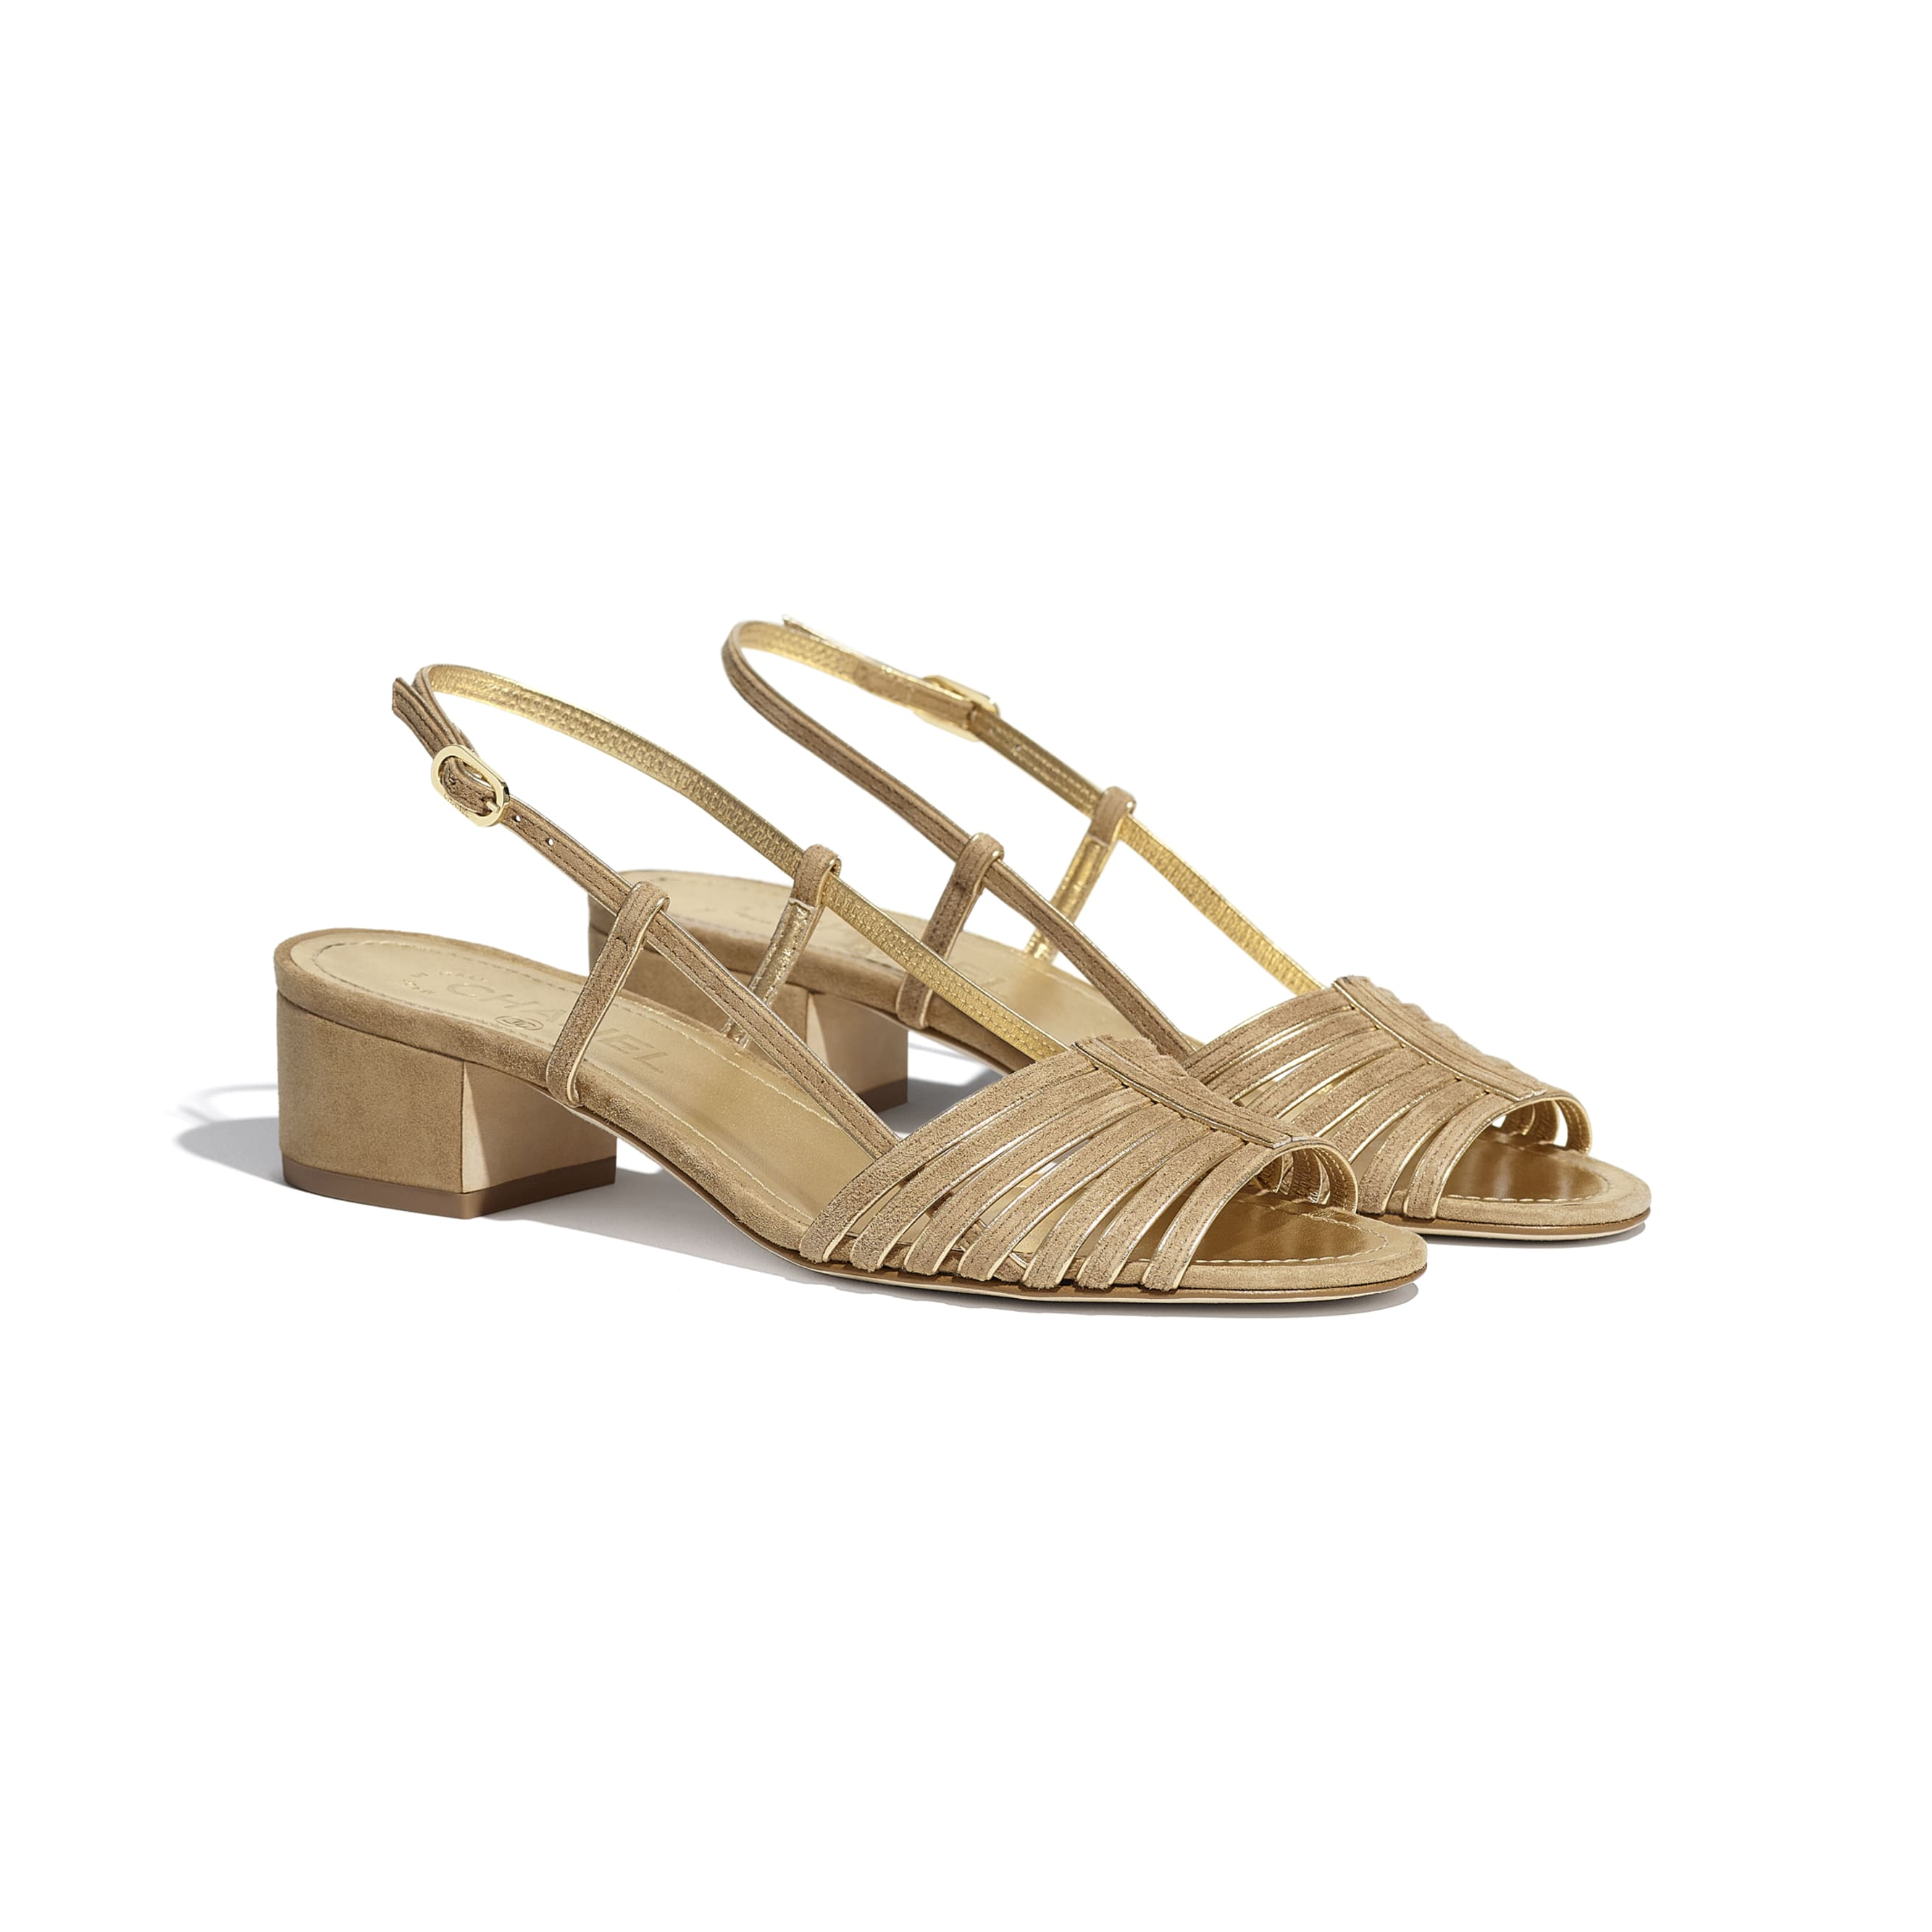 Sandals - Beige & Gold - Suede Kidskin - CHANEL - Alternative view - see standard sized version